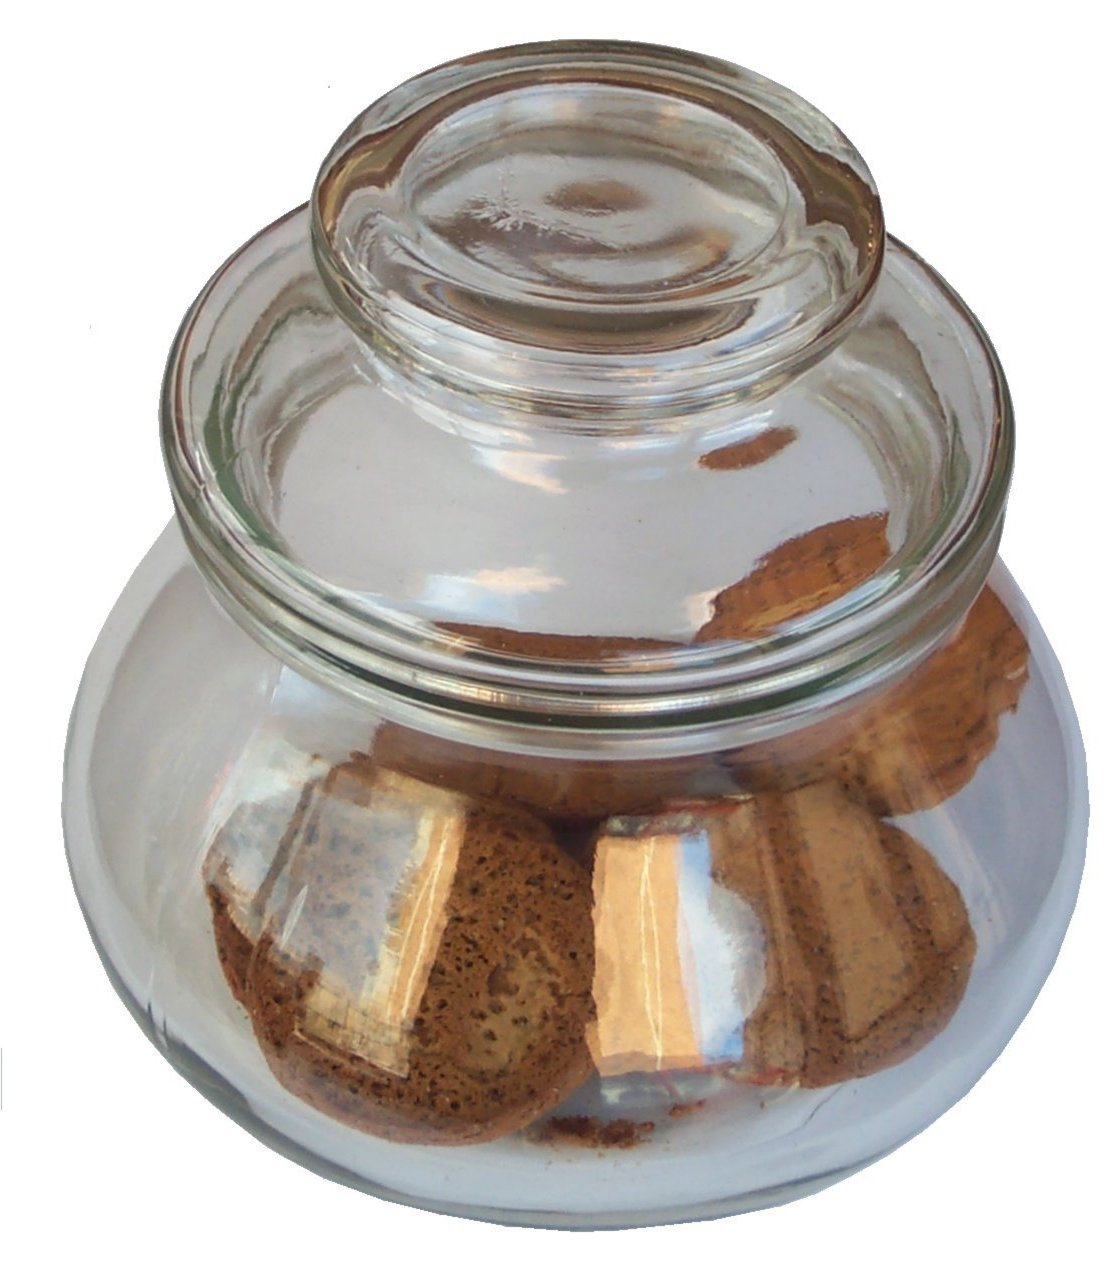 Cookie jar (closed).jpg